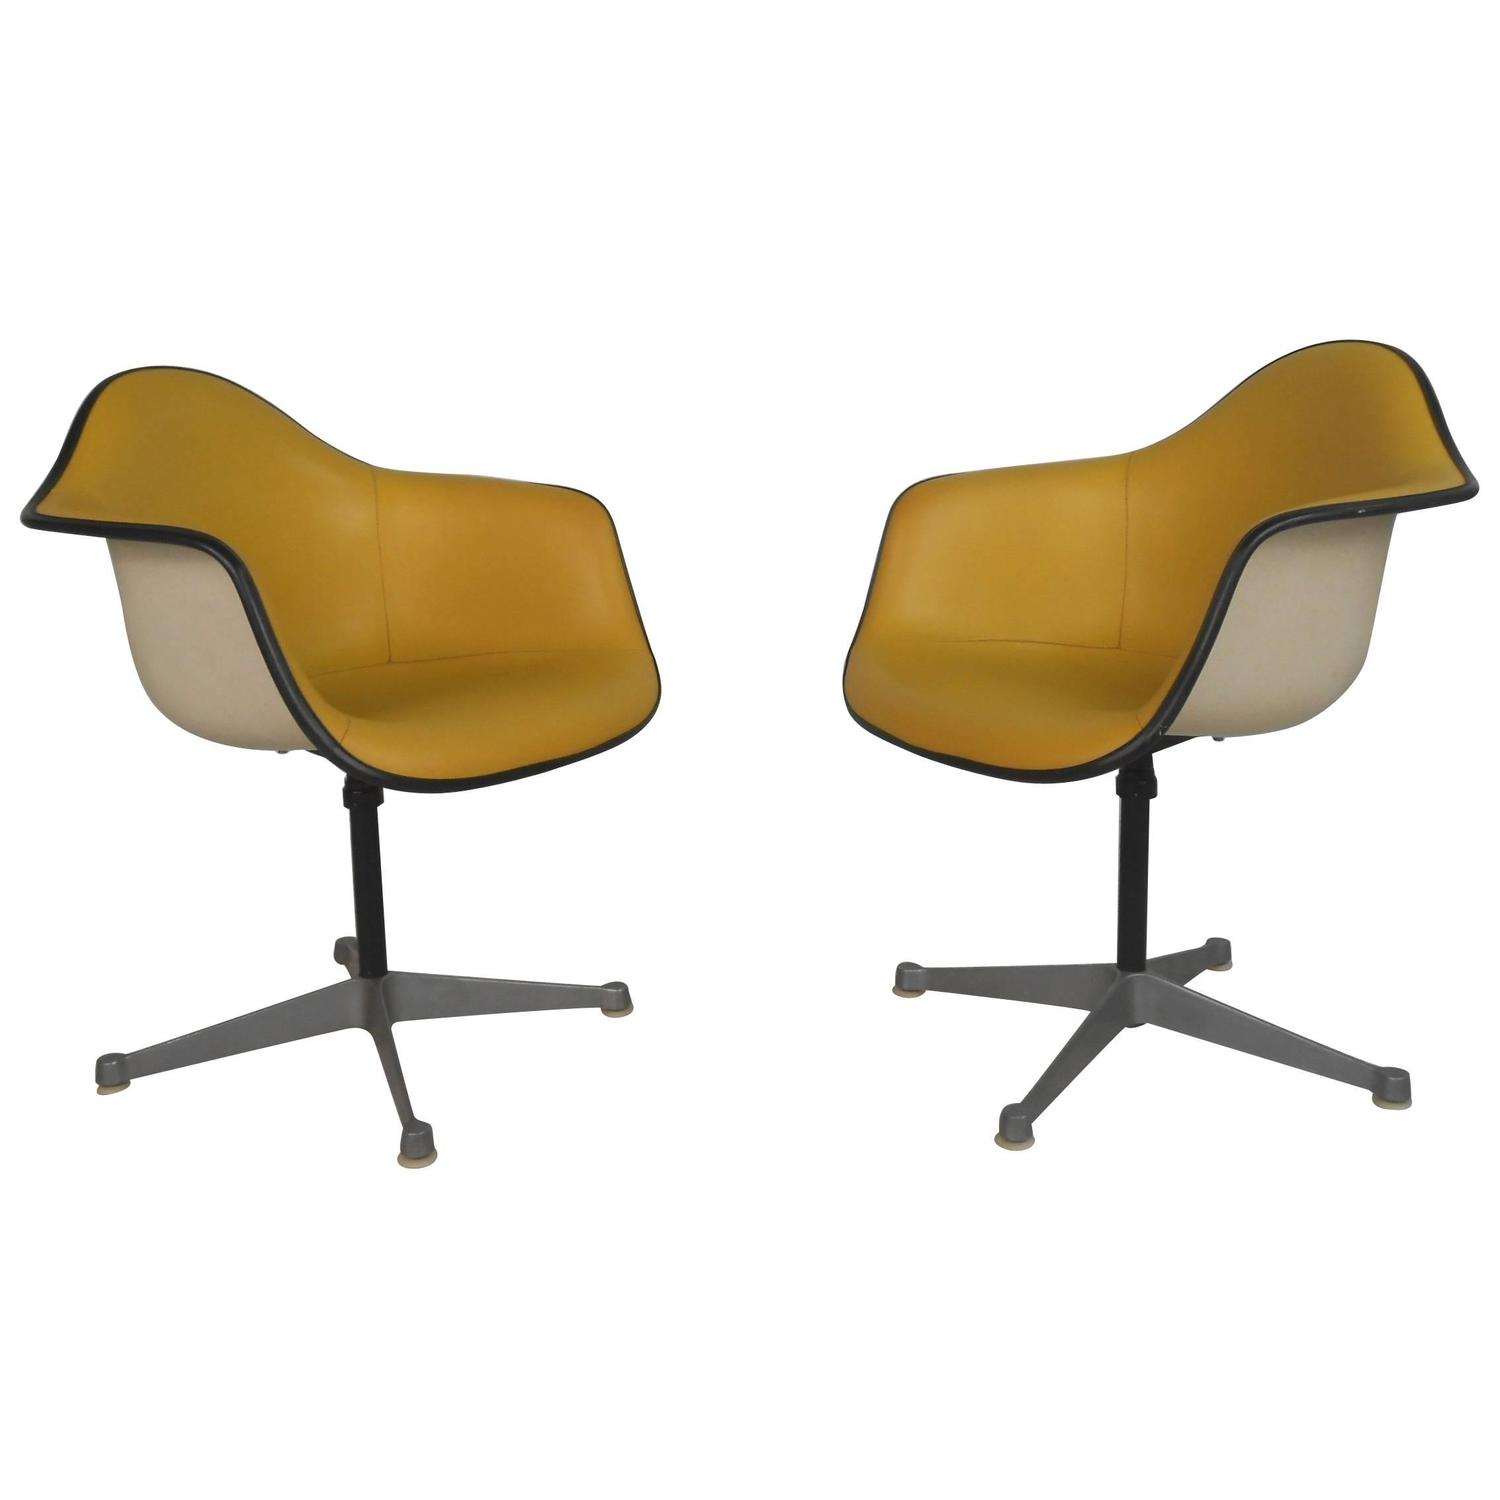 Bent plywood chair eames - Pair Charles Eames For Herman Miller Bucket Chairs